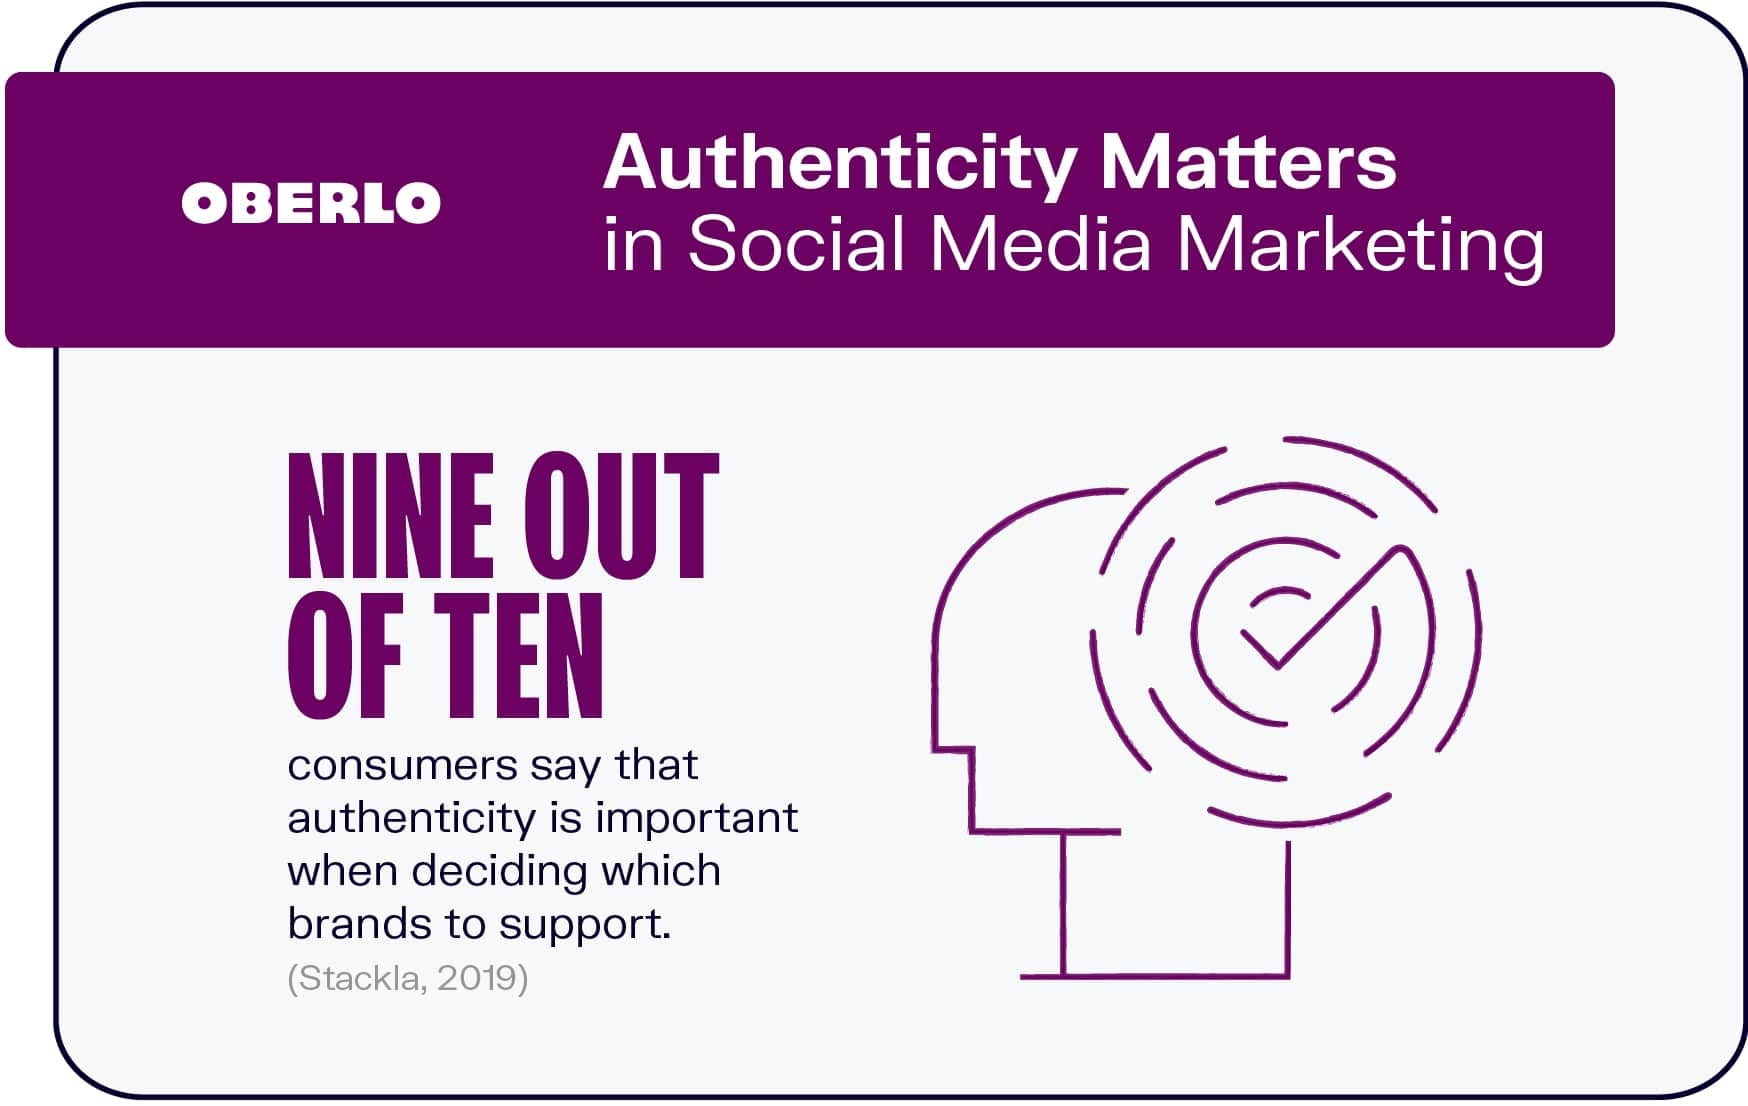 Authenticity Matters in Social Media Marketing